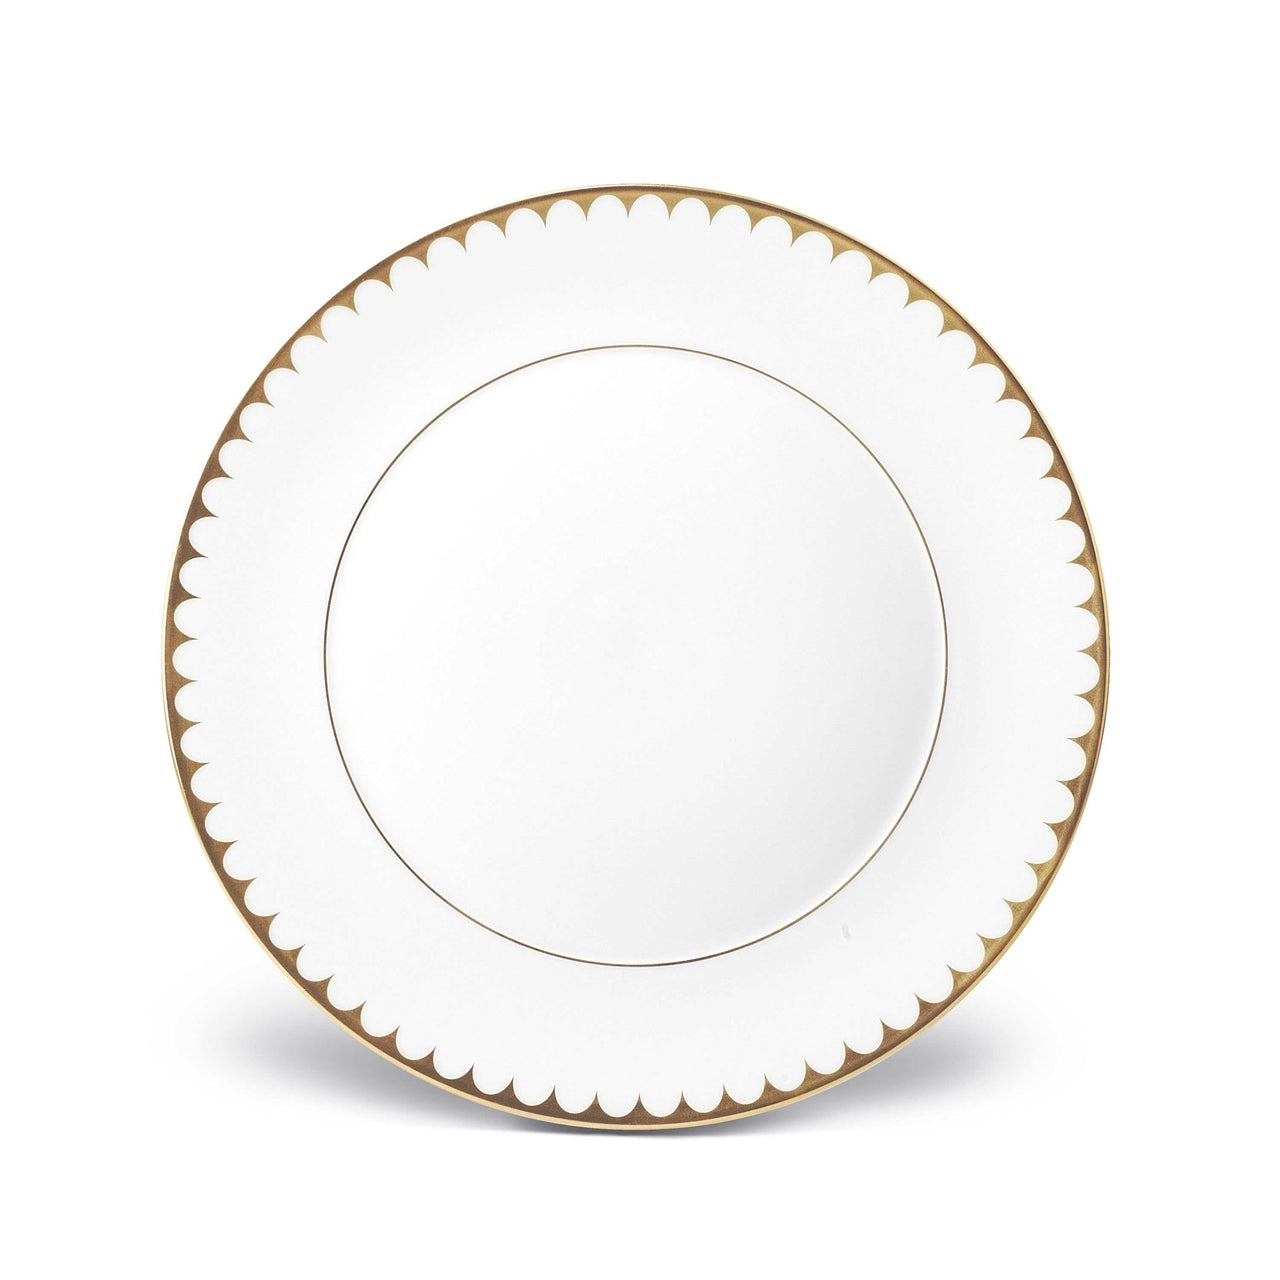 Aegean Filet Gold Dinner Plate